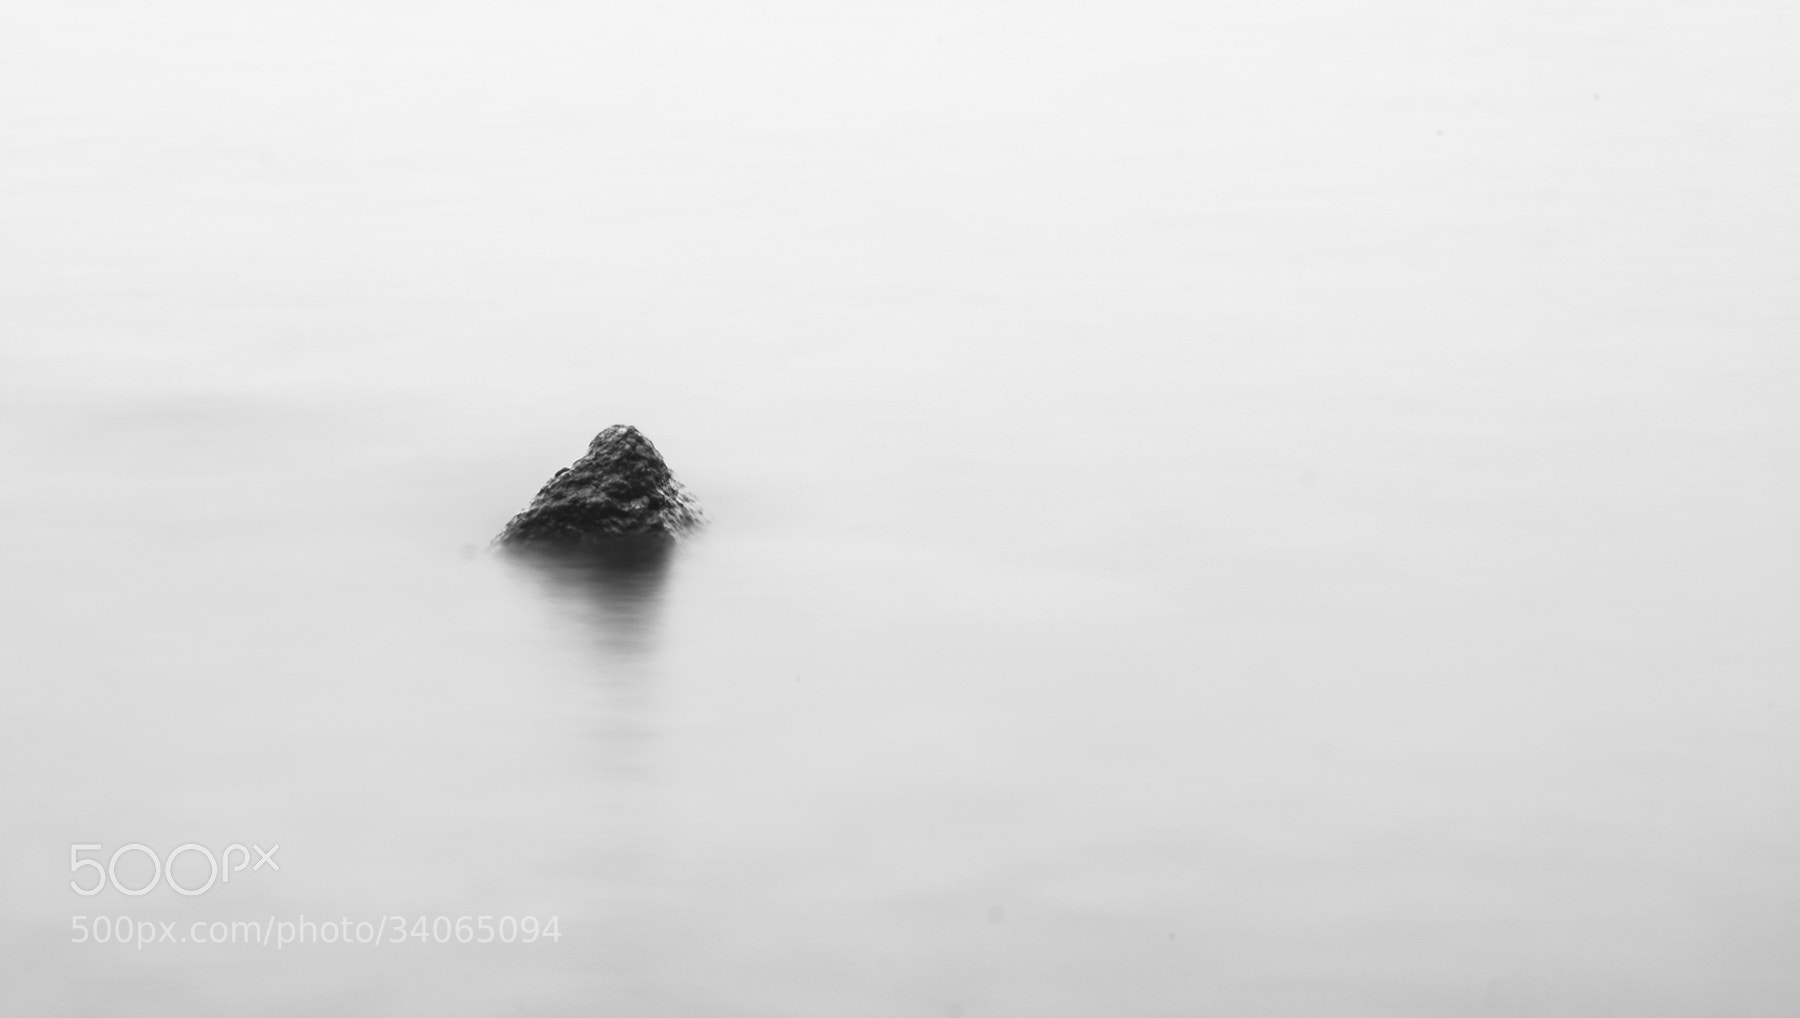 Photograph Minimalistic Beauty by Ola Warringer on 500px